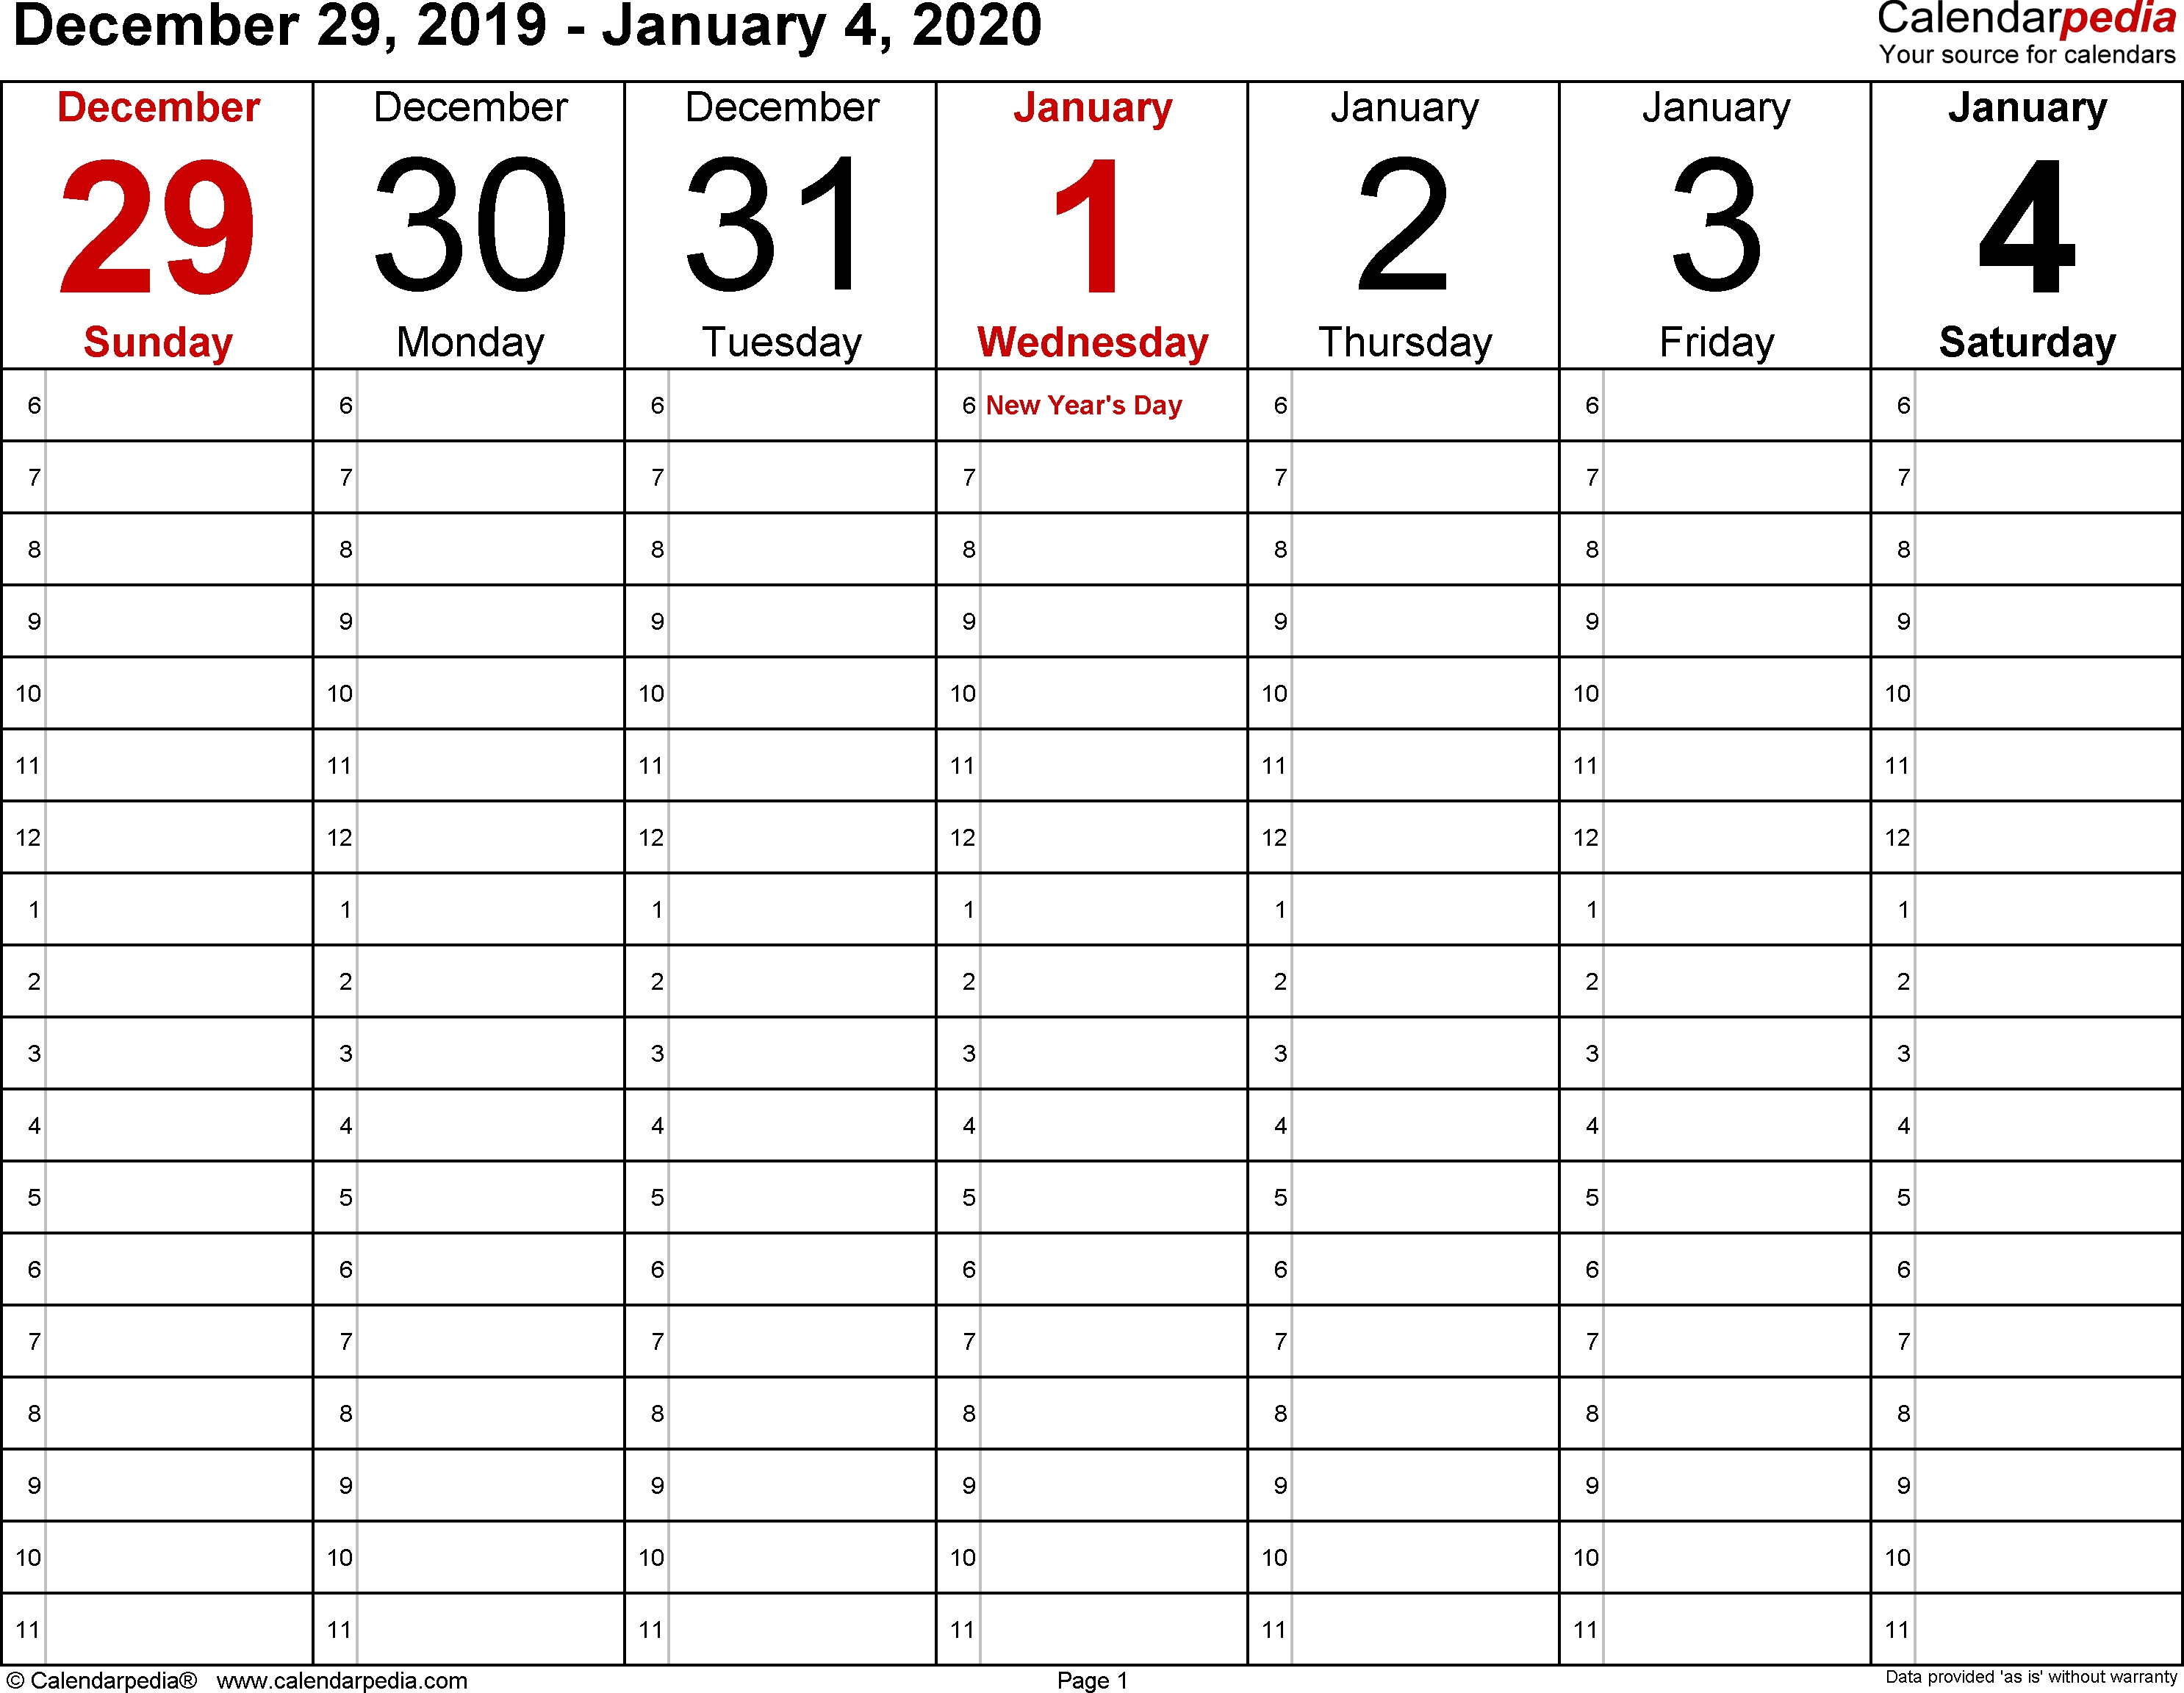 Weekly Calendar 2020 For Word - 12 Free Printable Templates-Editable Printable Calendar 2020 Monthly Sunday Start